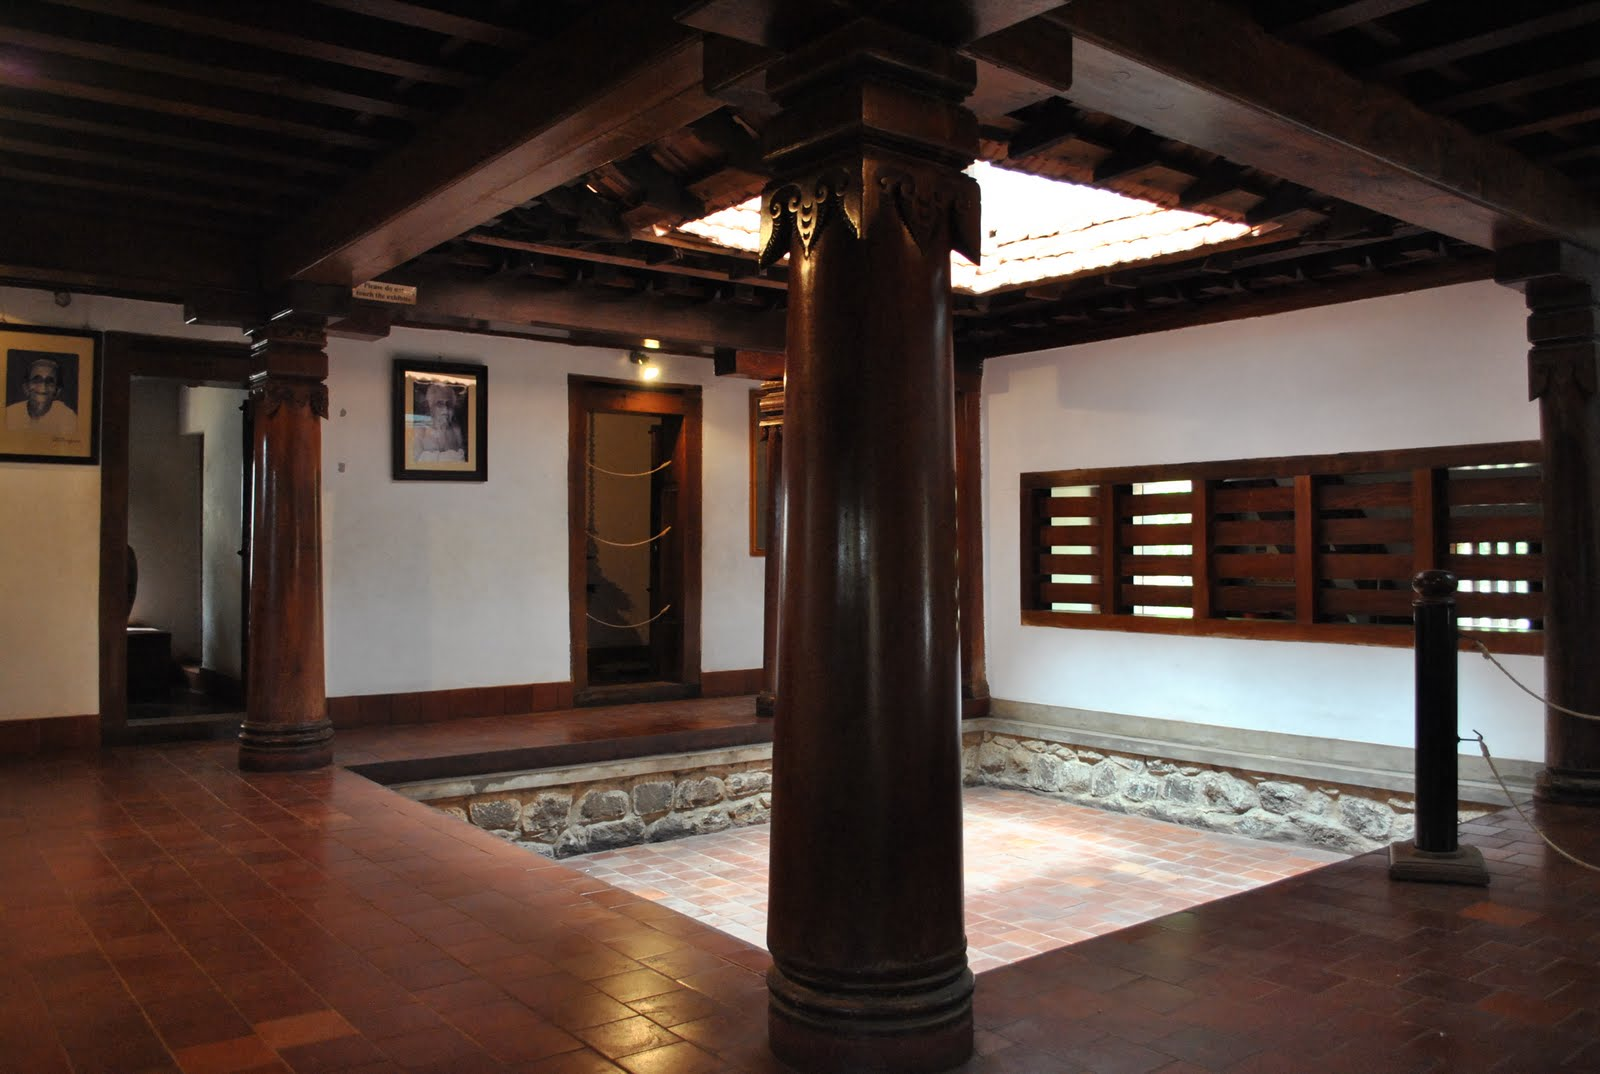 Dakshin Chitra Courtyard Home via ShadowsGalore dot com